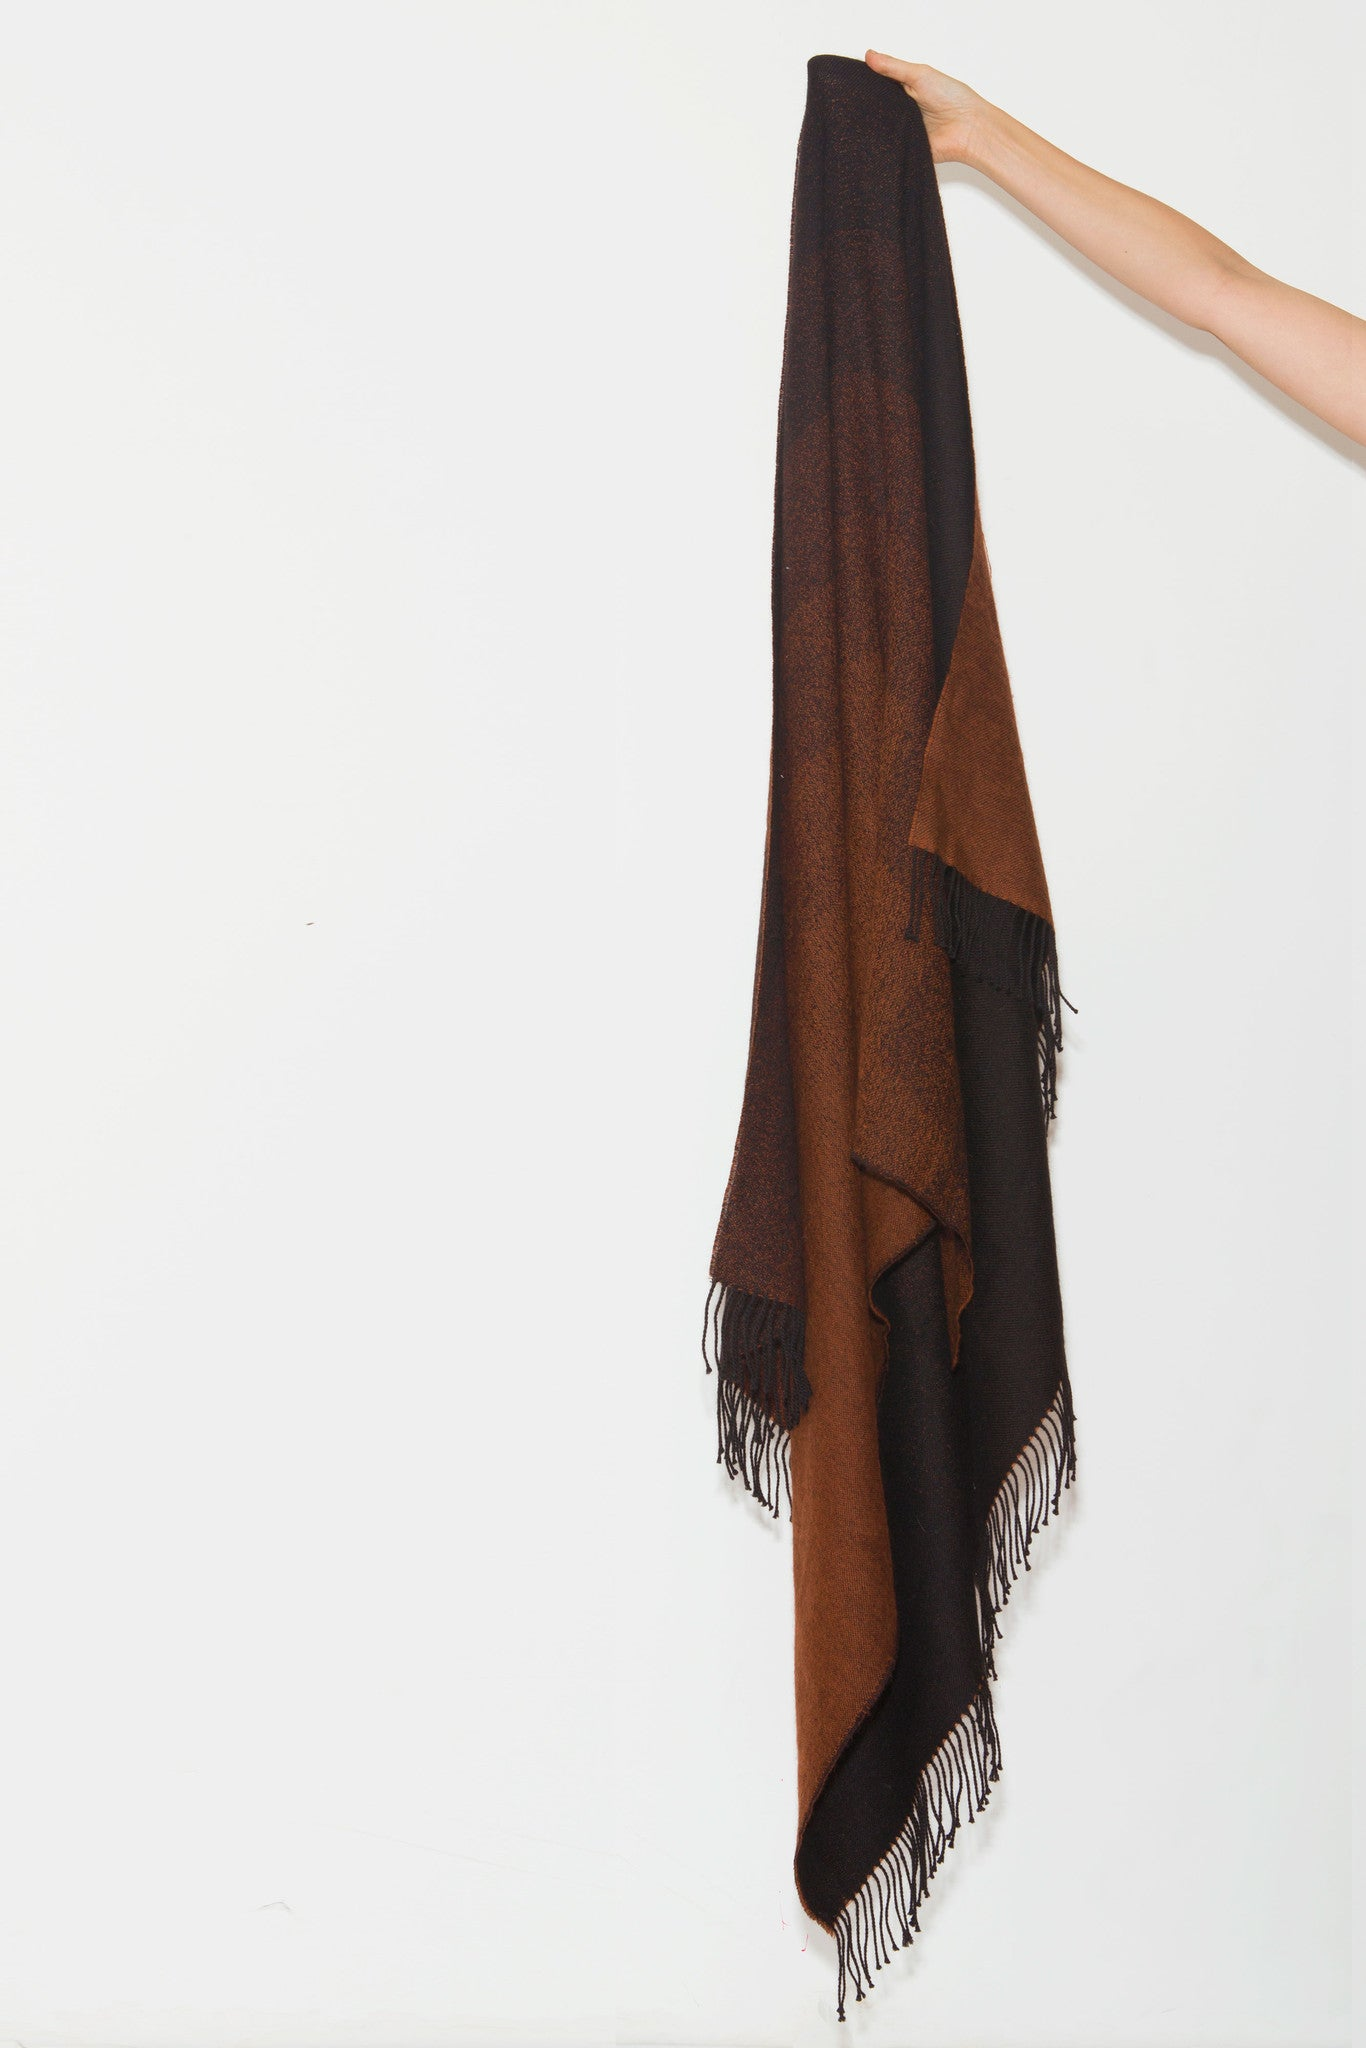 Mera Scarf is an oversized merino wool/cashmere scarf made from baby alpaca by A Peace Treaty